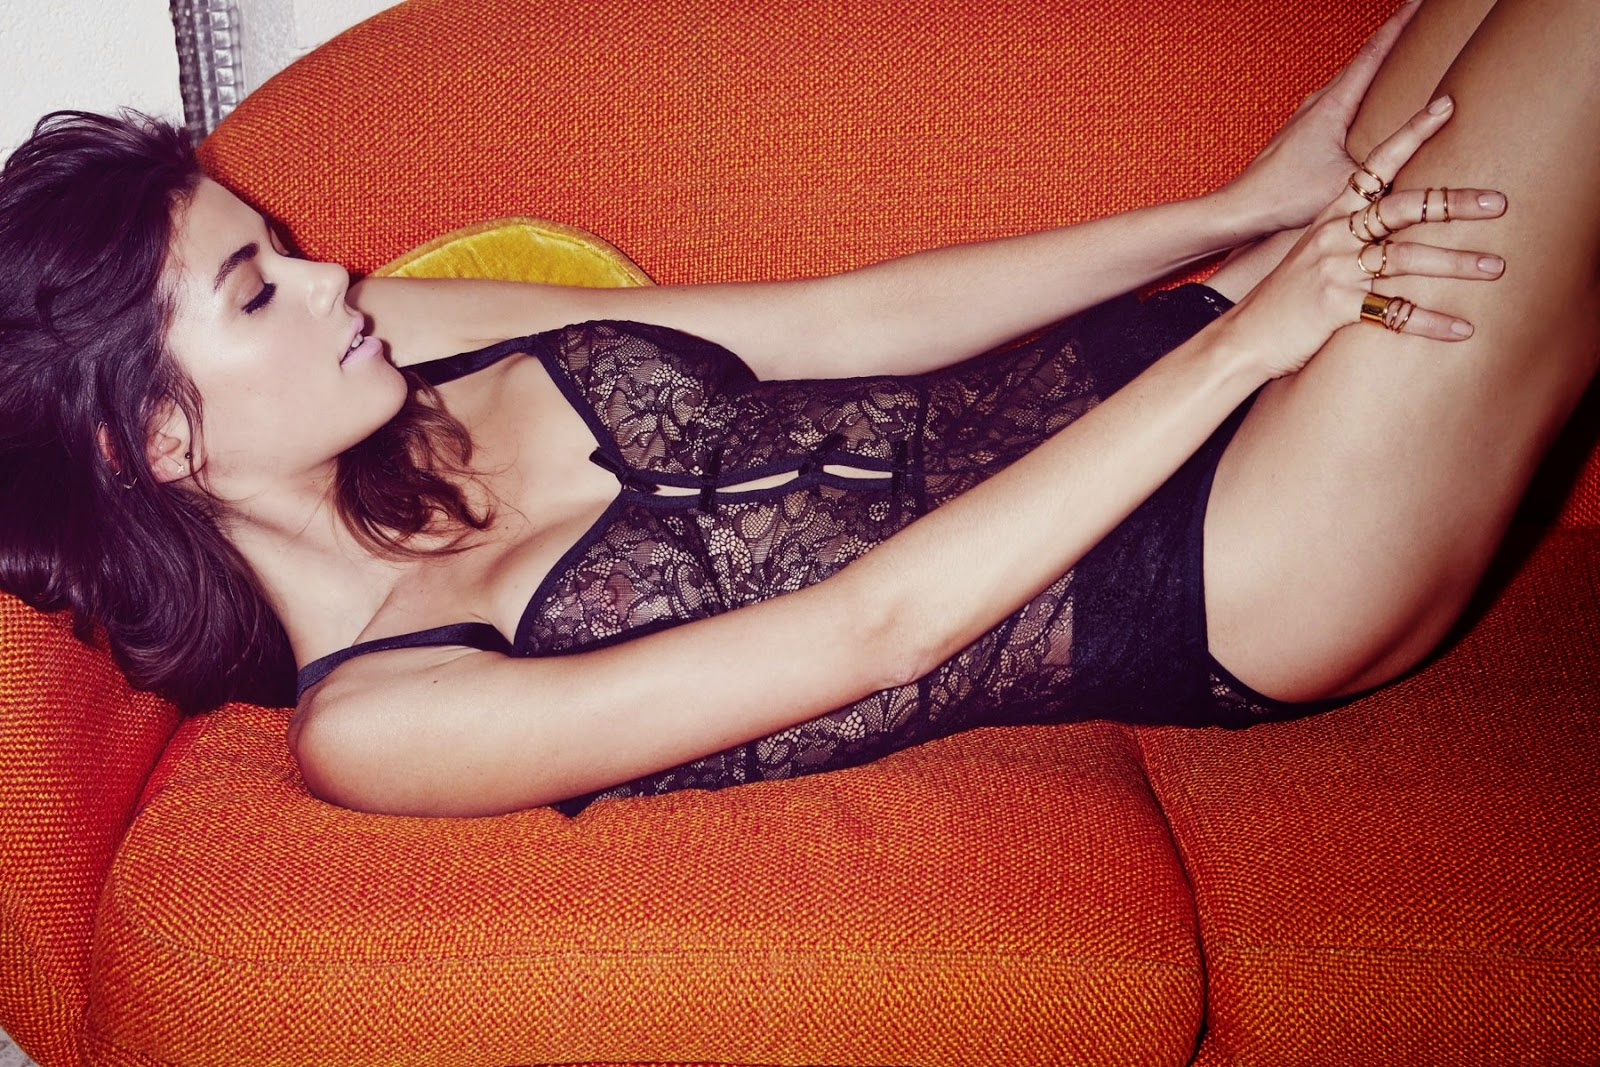 Women's Corner Lingerie & Intimate Apparel - A Pinch of Soul and Style